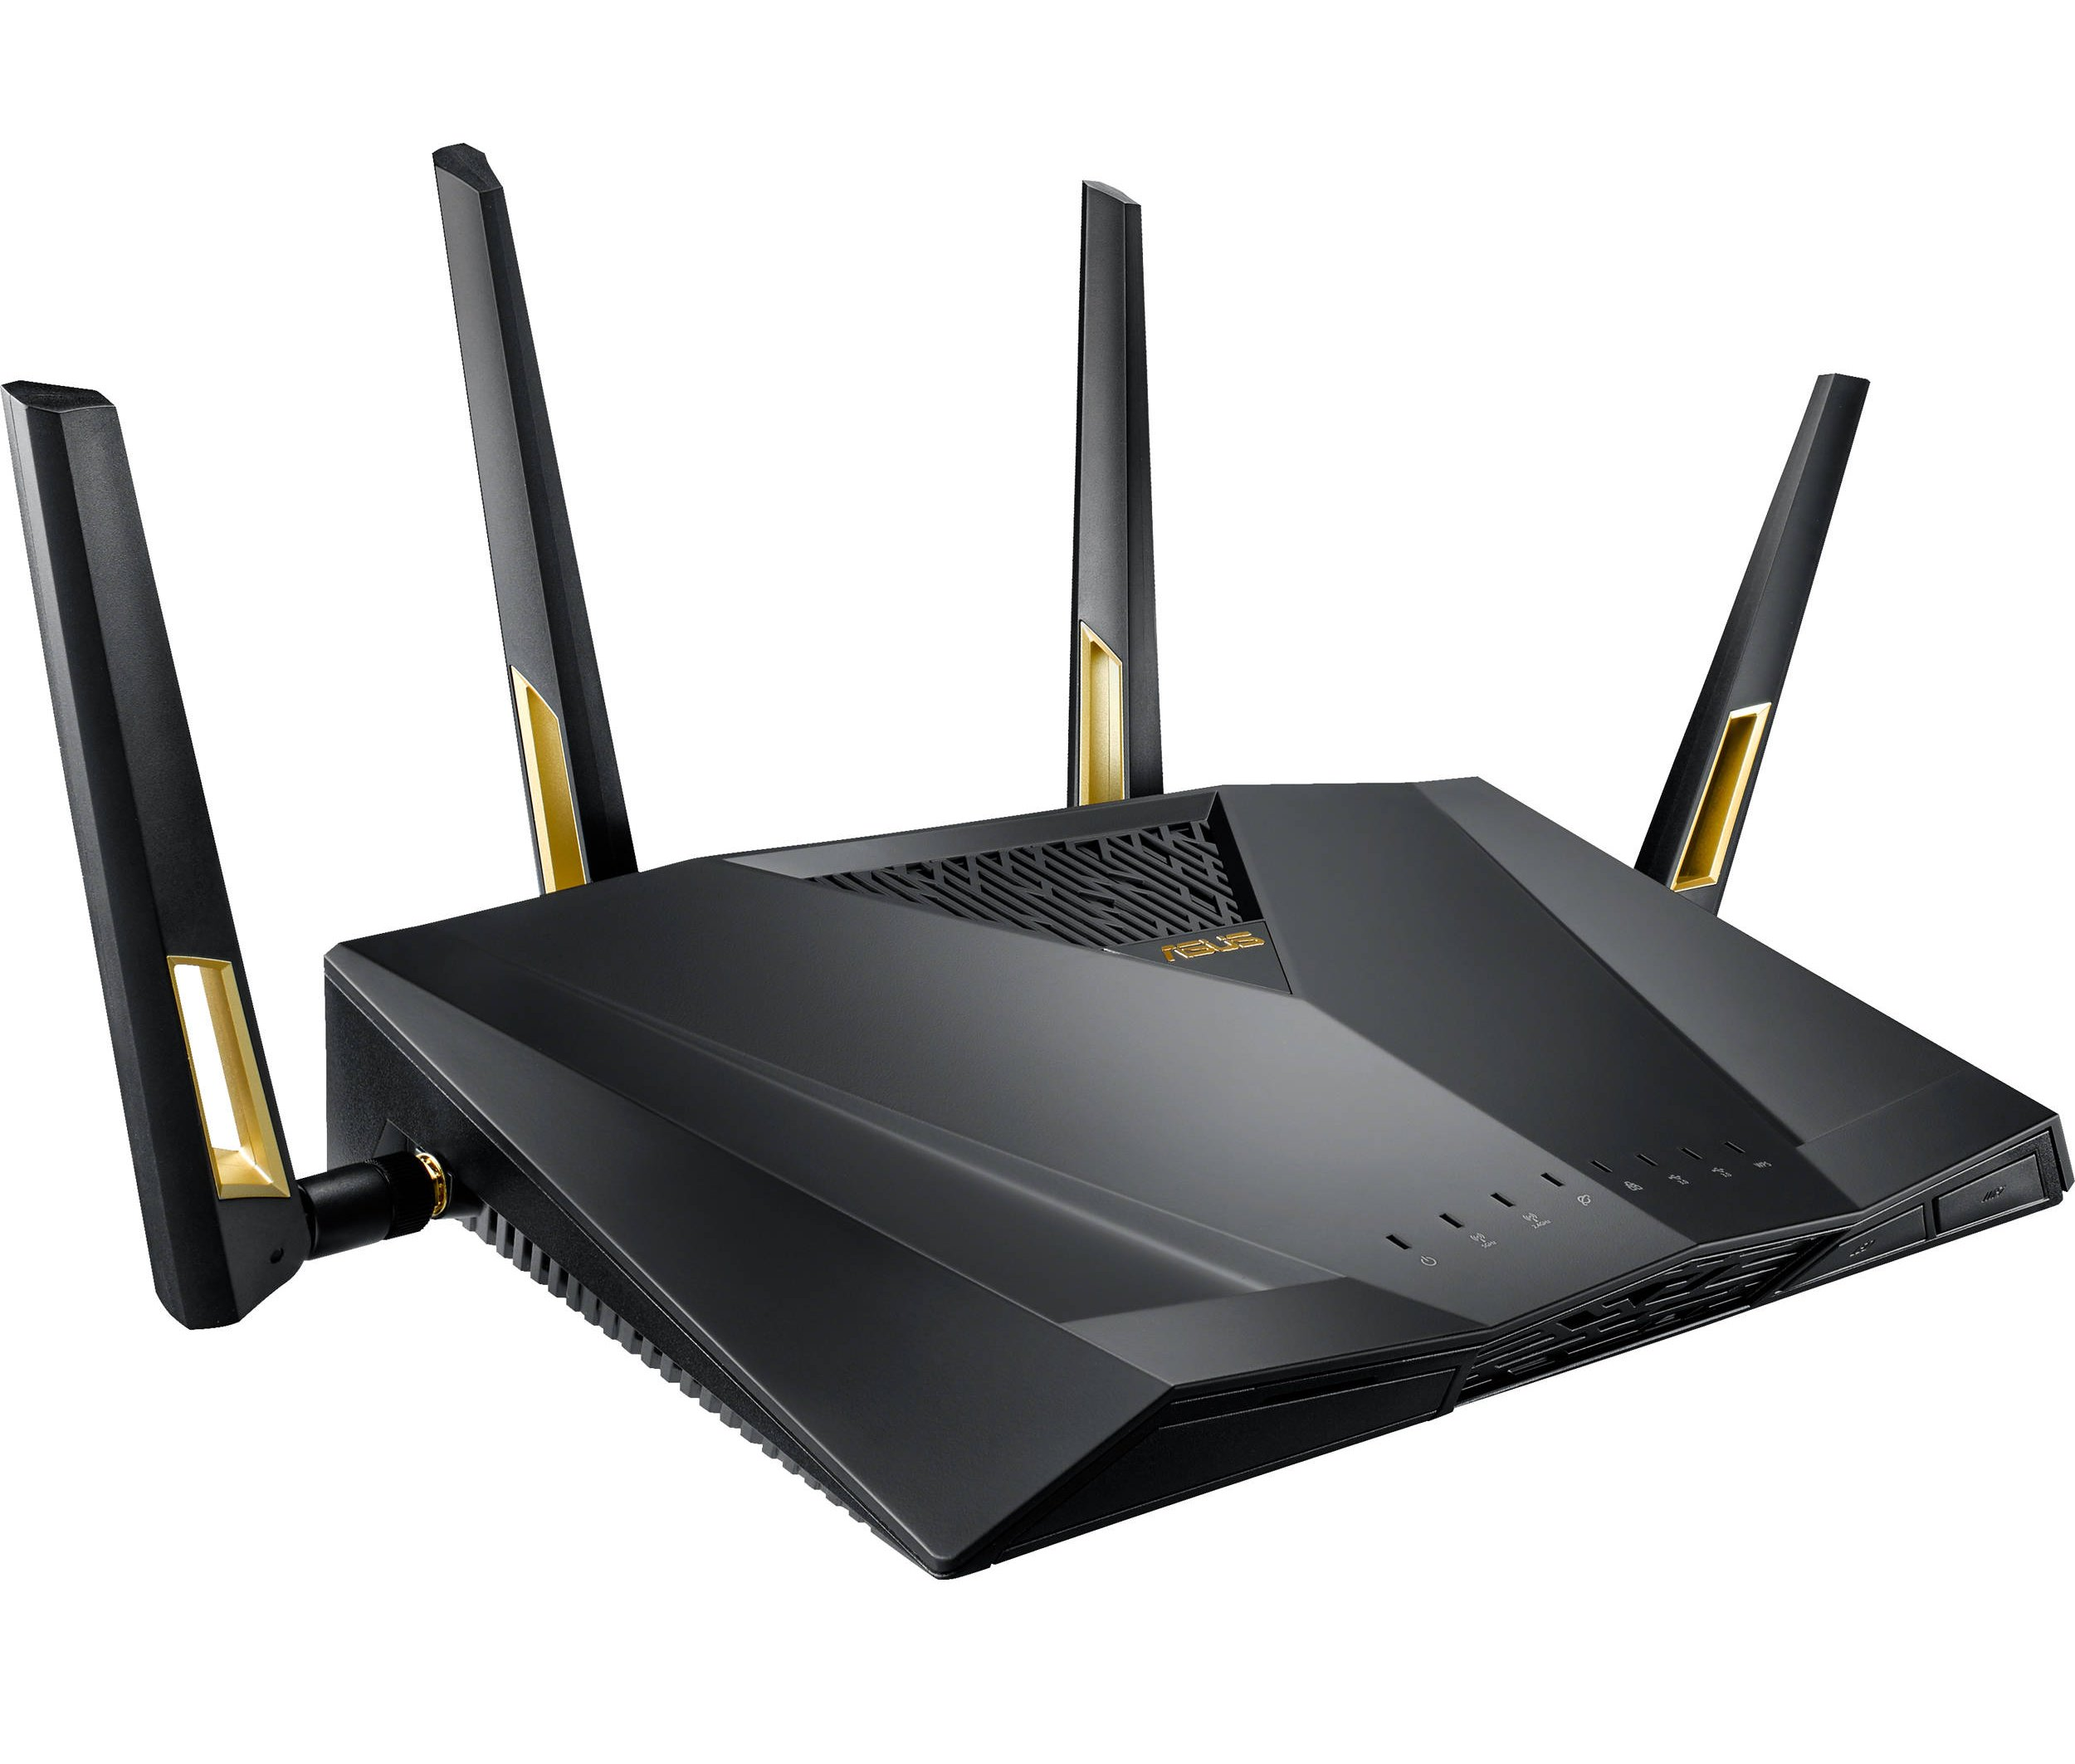 Asus vs. Netgear routers